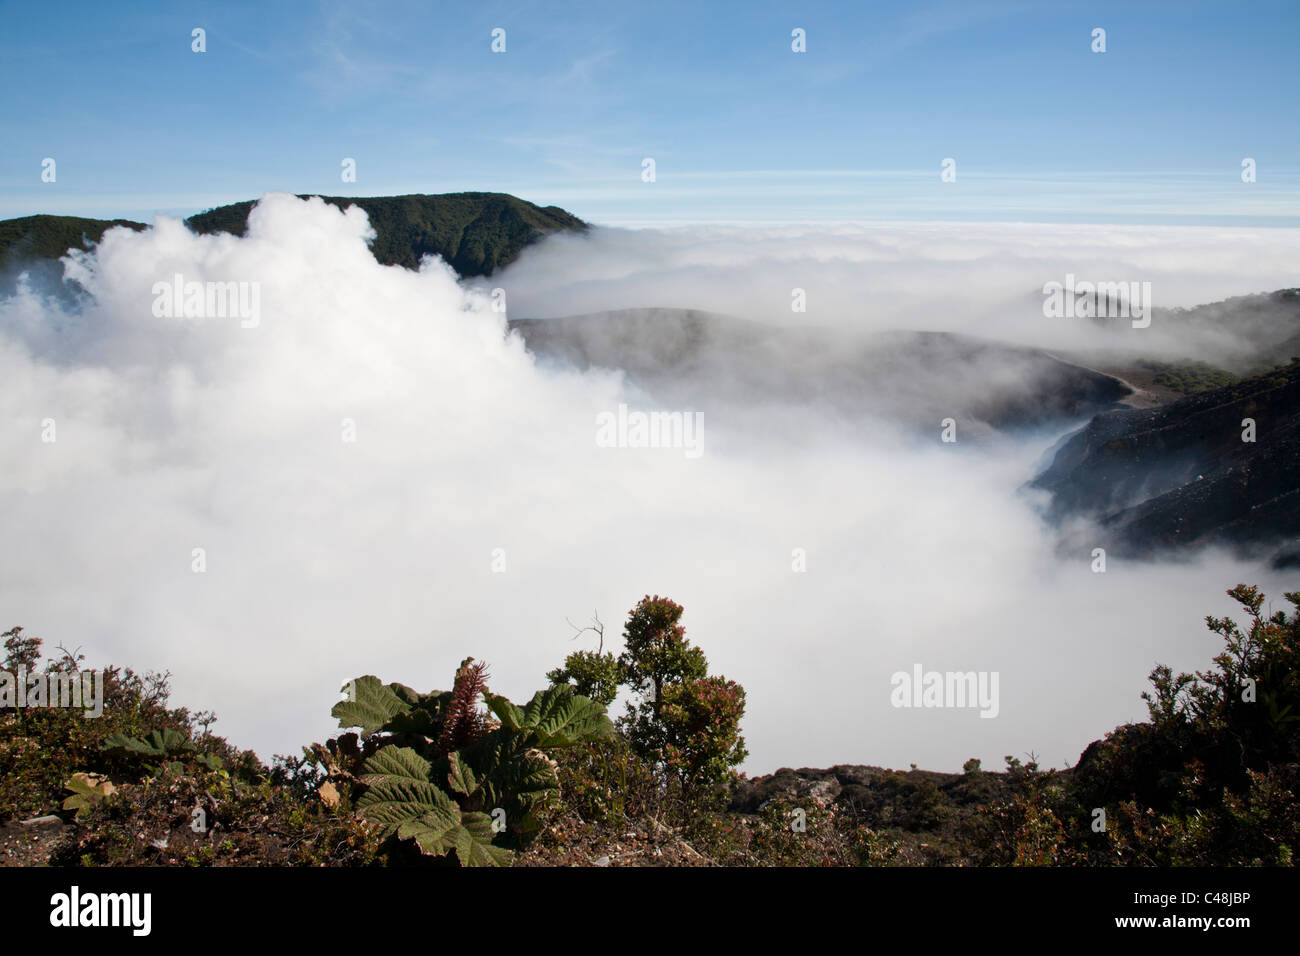 By clouds limited view of the Poas volcano crater. Near San Jose, Costa Rica. - Stock Image